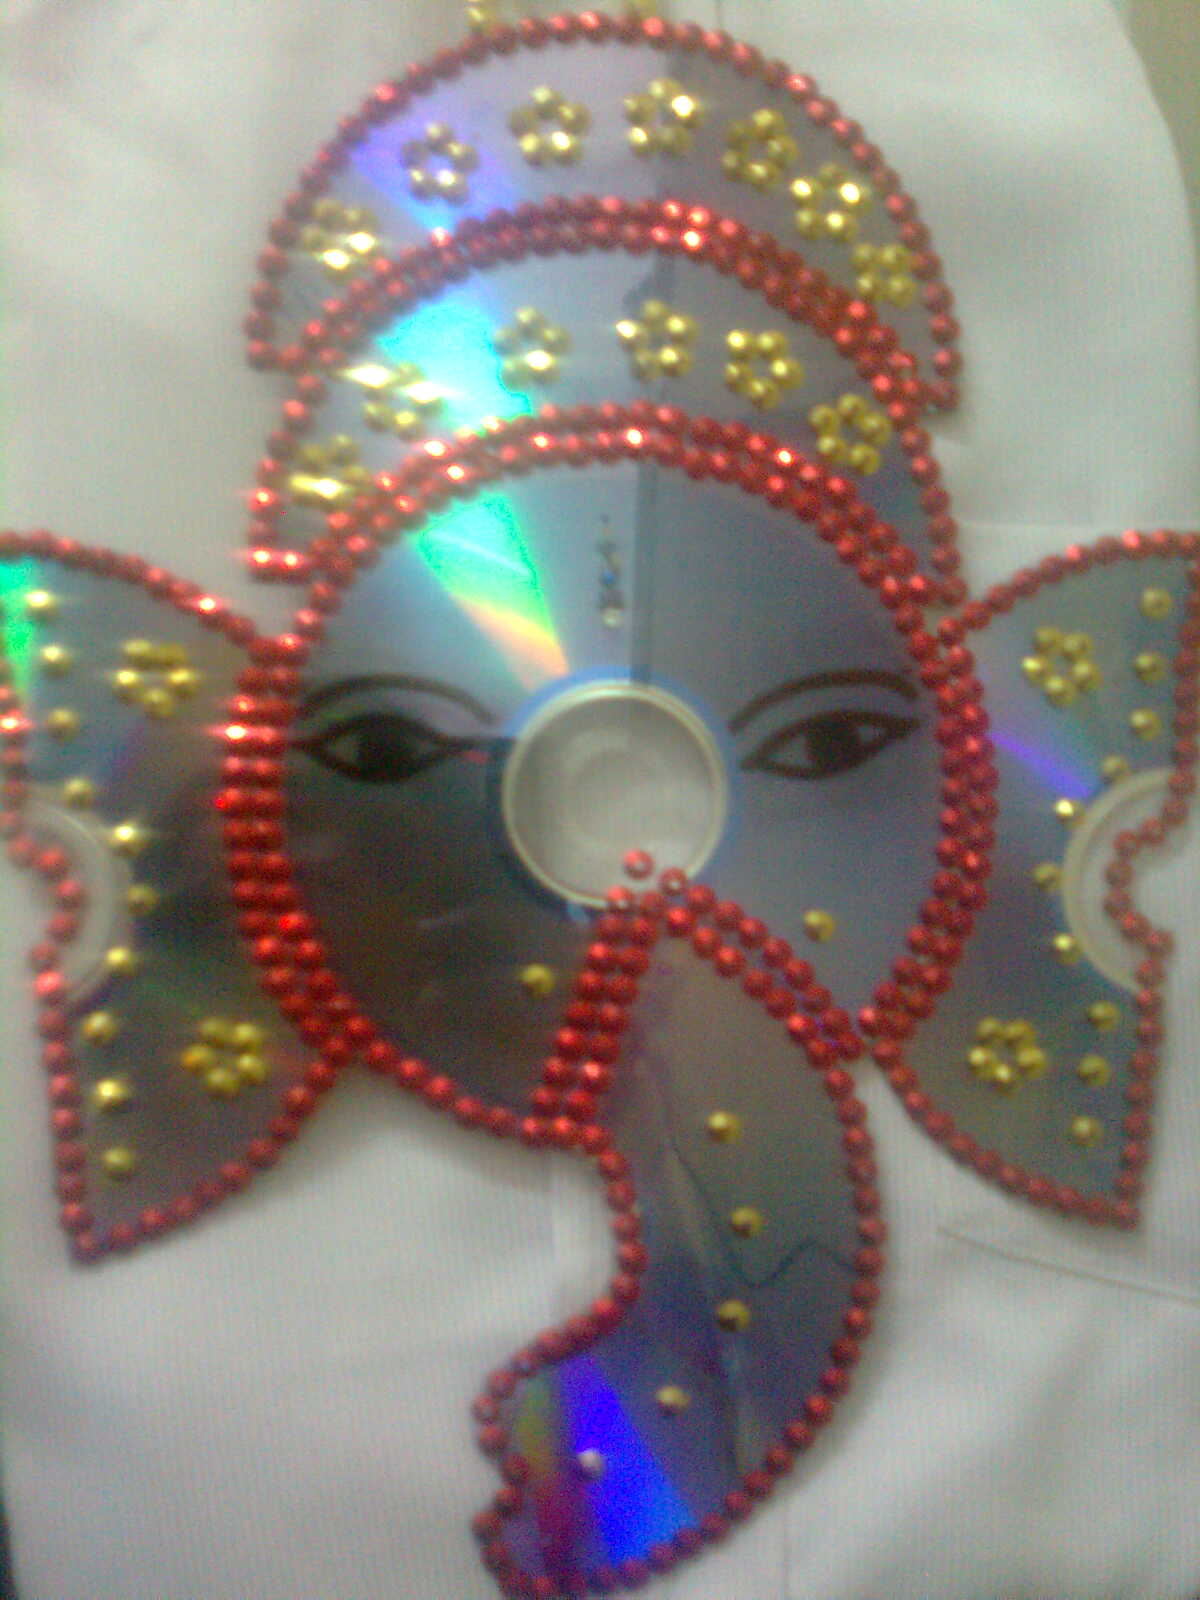 Maha arts crafts cd ganesh vinayagar for Waste crafts making